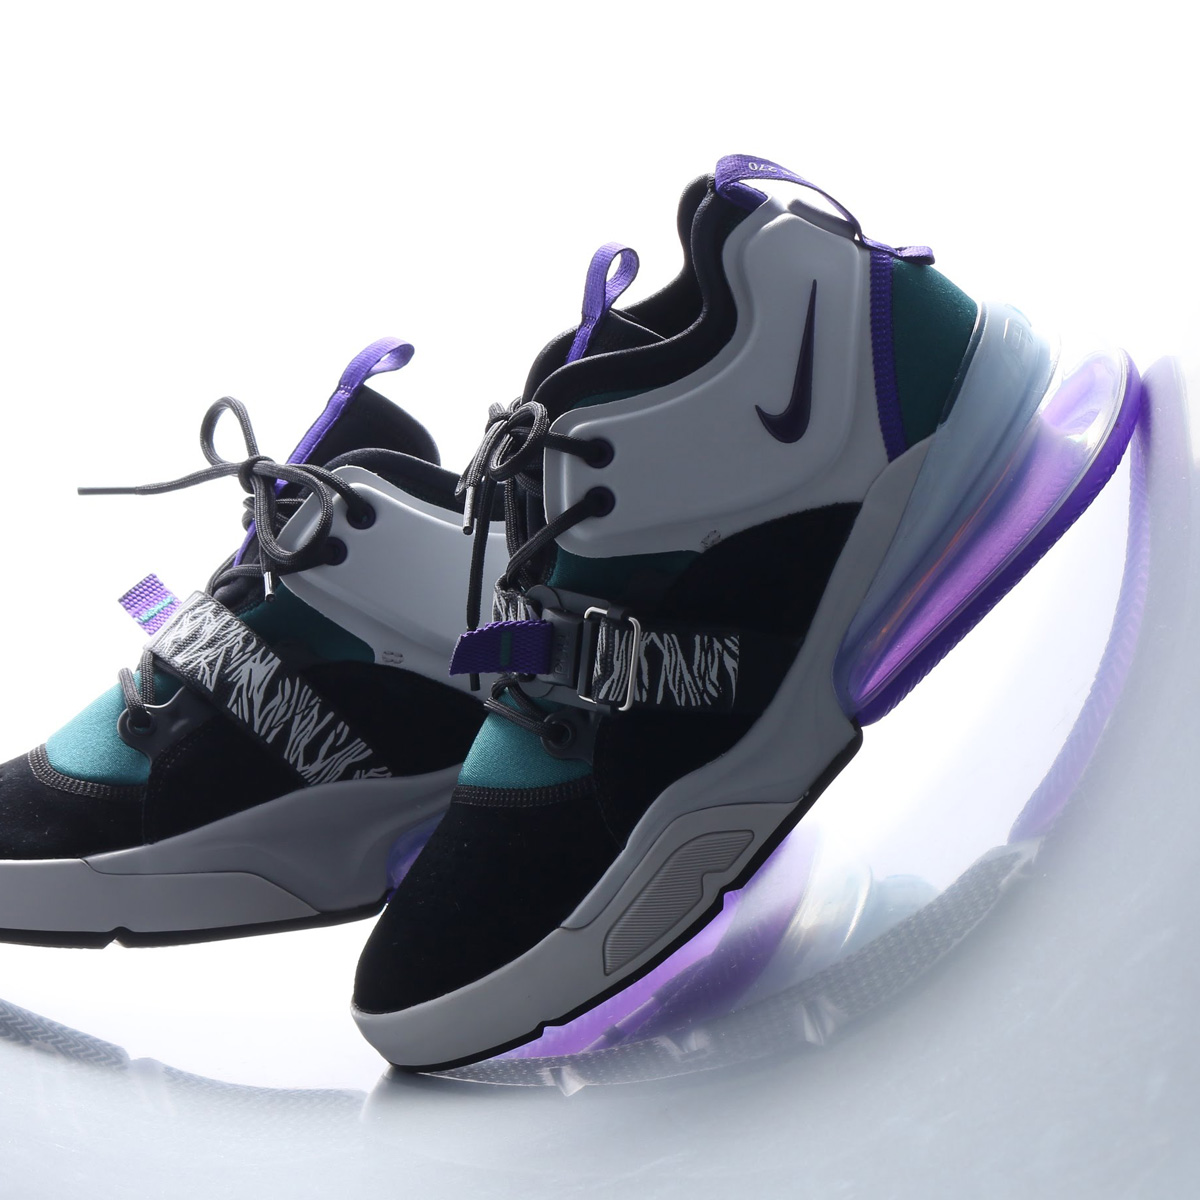 451e83708b2dad atmos pink  NIKE AIR FORCE 270 (Nike air force 270) BLACK COURT PURPLE-DK  ATOMIC TEAL 18SU-S